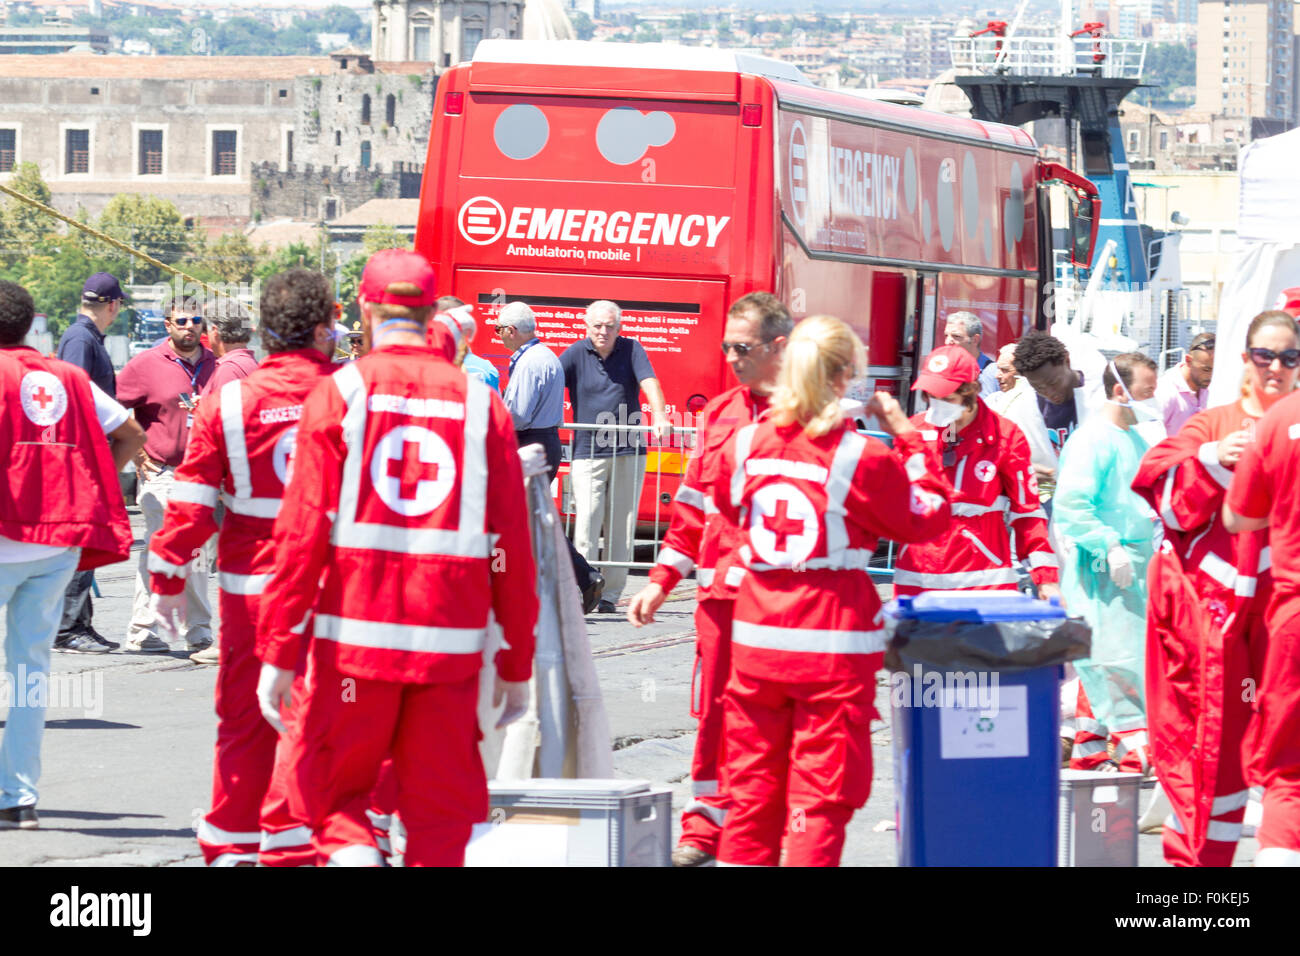 Catania, Italy. 17th August, 2015. Mobile clinic of emergency. Credit:  Simone Genovese/Alamy Live News - Stock Image